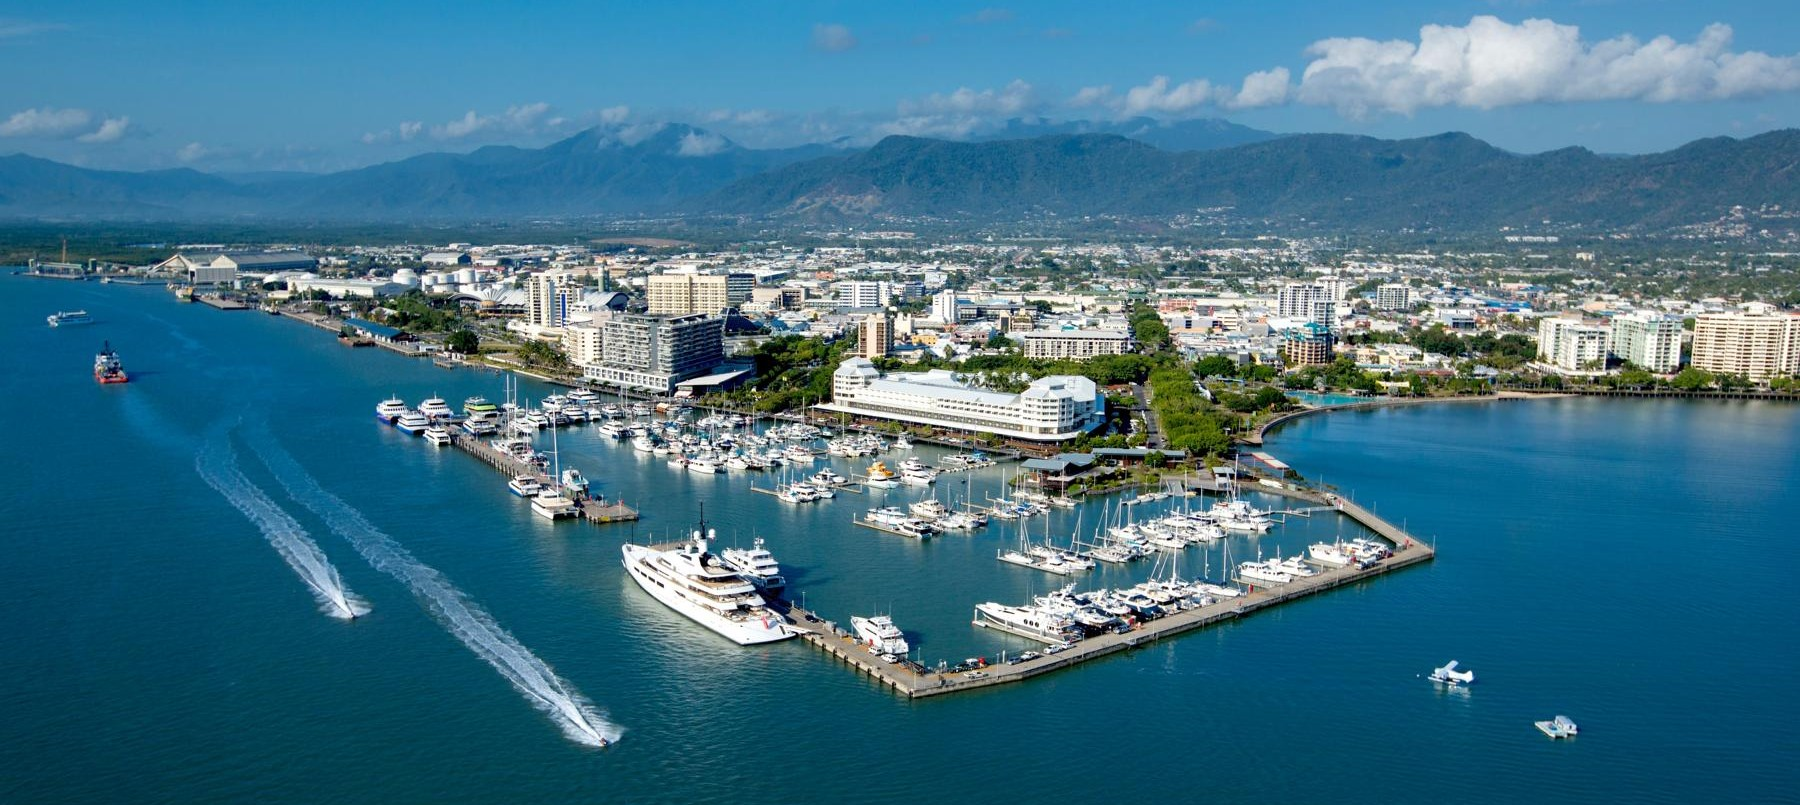 Cairns eco friendly hotels tours activities for smart for Hotels tours